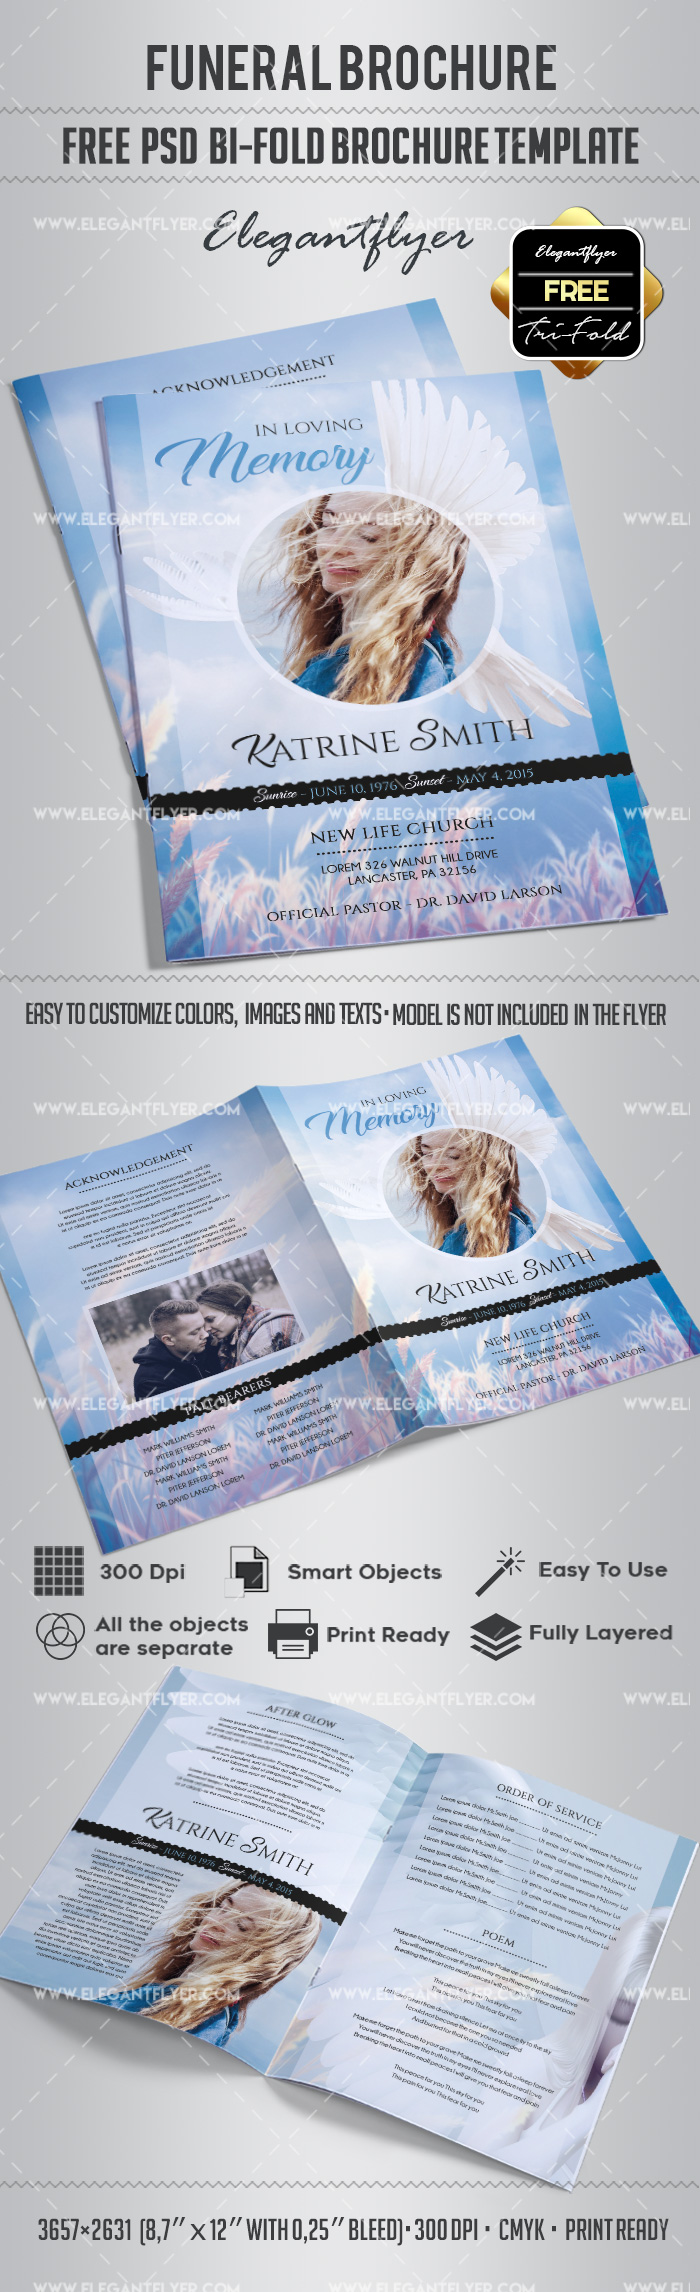 Free funeral bi fold brochure by elegantflyer for Free flyer brochure templates